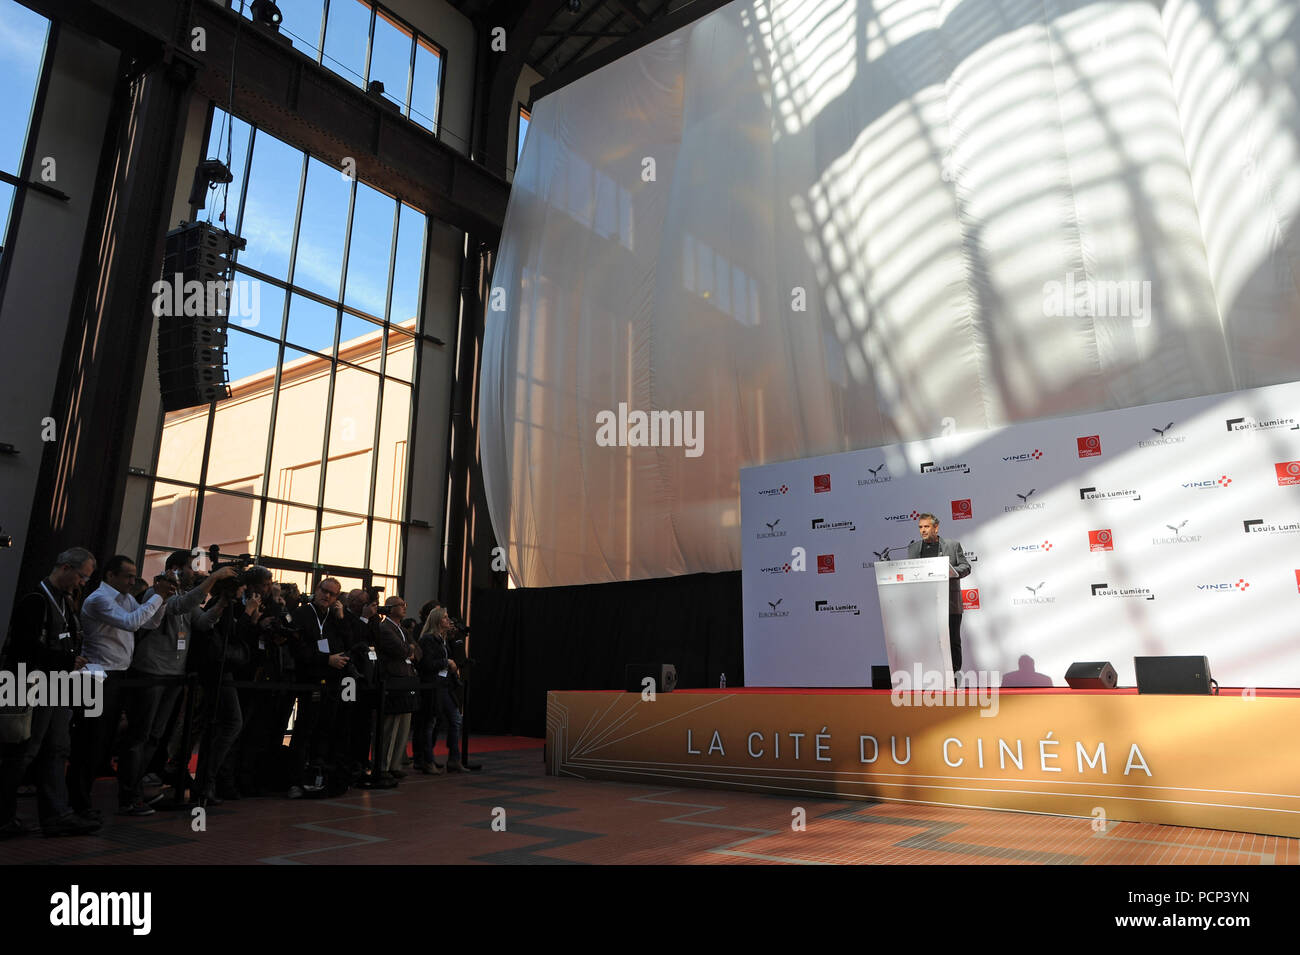 September 21, 2012 - Saint-Denis, France: French filmmaker Luc Besson unveils his 'cinema city' (Cite du Cinema) on the edge of Paris. The 170-million-euros project is the largest film studio facility ever built in France, which earned it the nickname 'Hollywood on Seine'. The former art deco power station compound houses nine state-of-the-art film sets, 20,000sq metres of office, and several carpentry, model-making, and costume workshops. FRANCE OUT - Stock Image